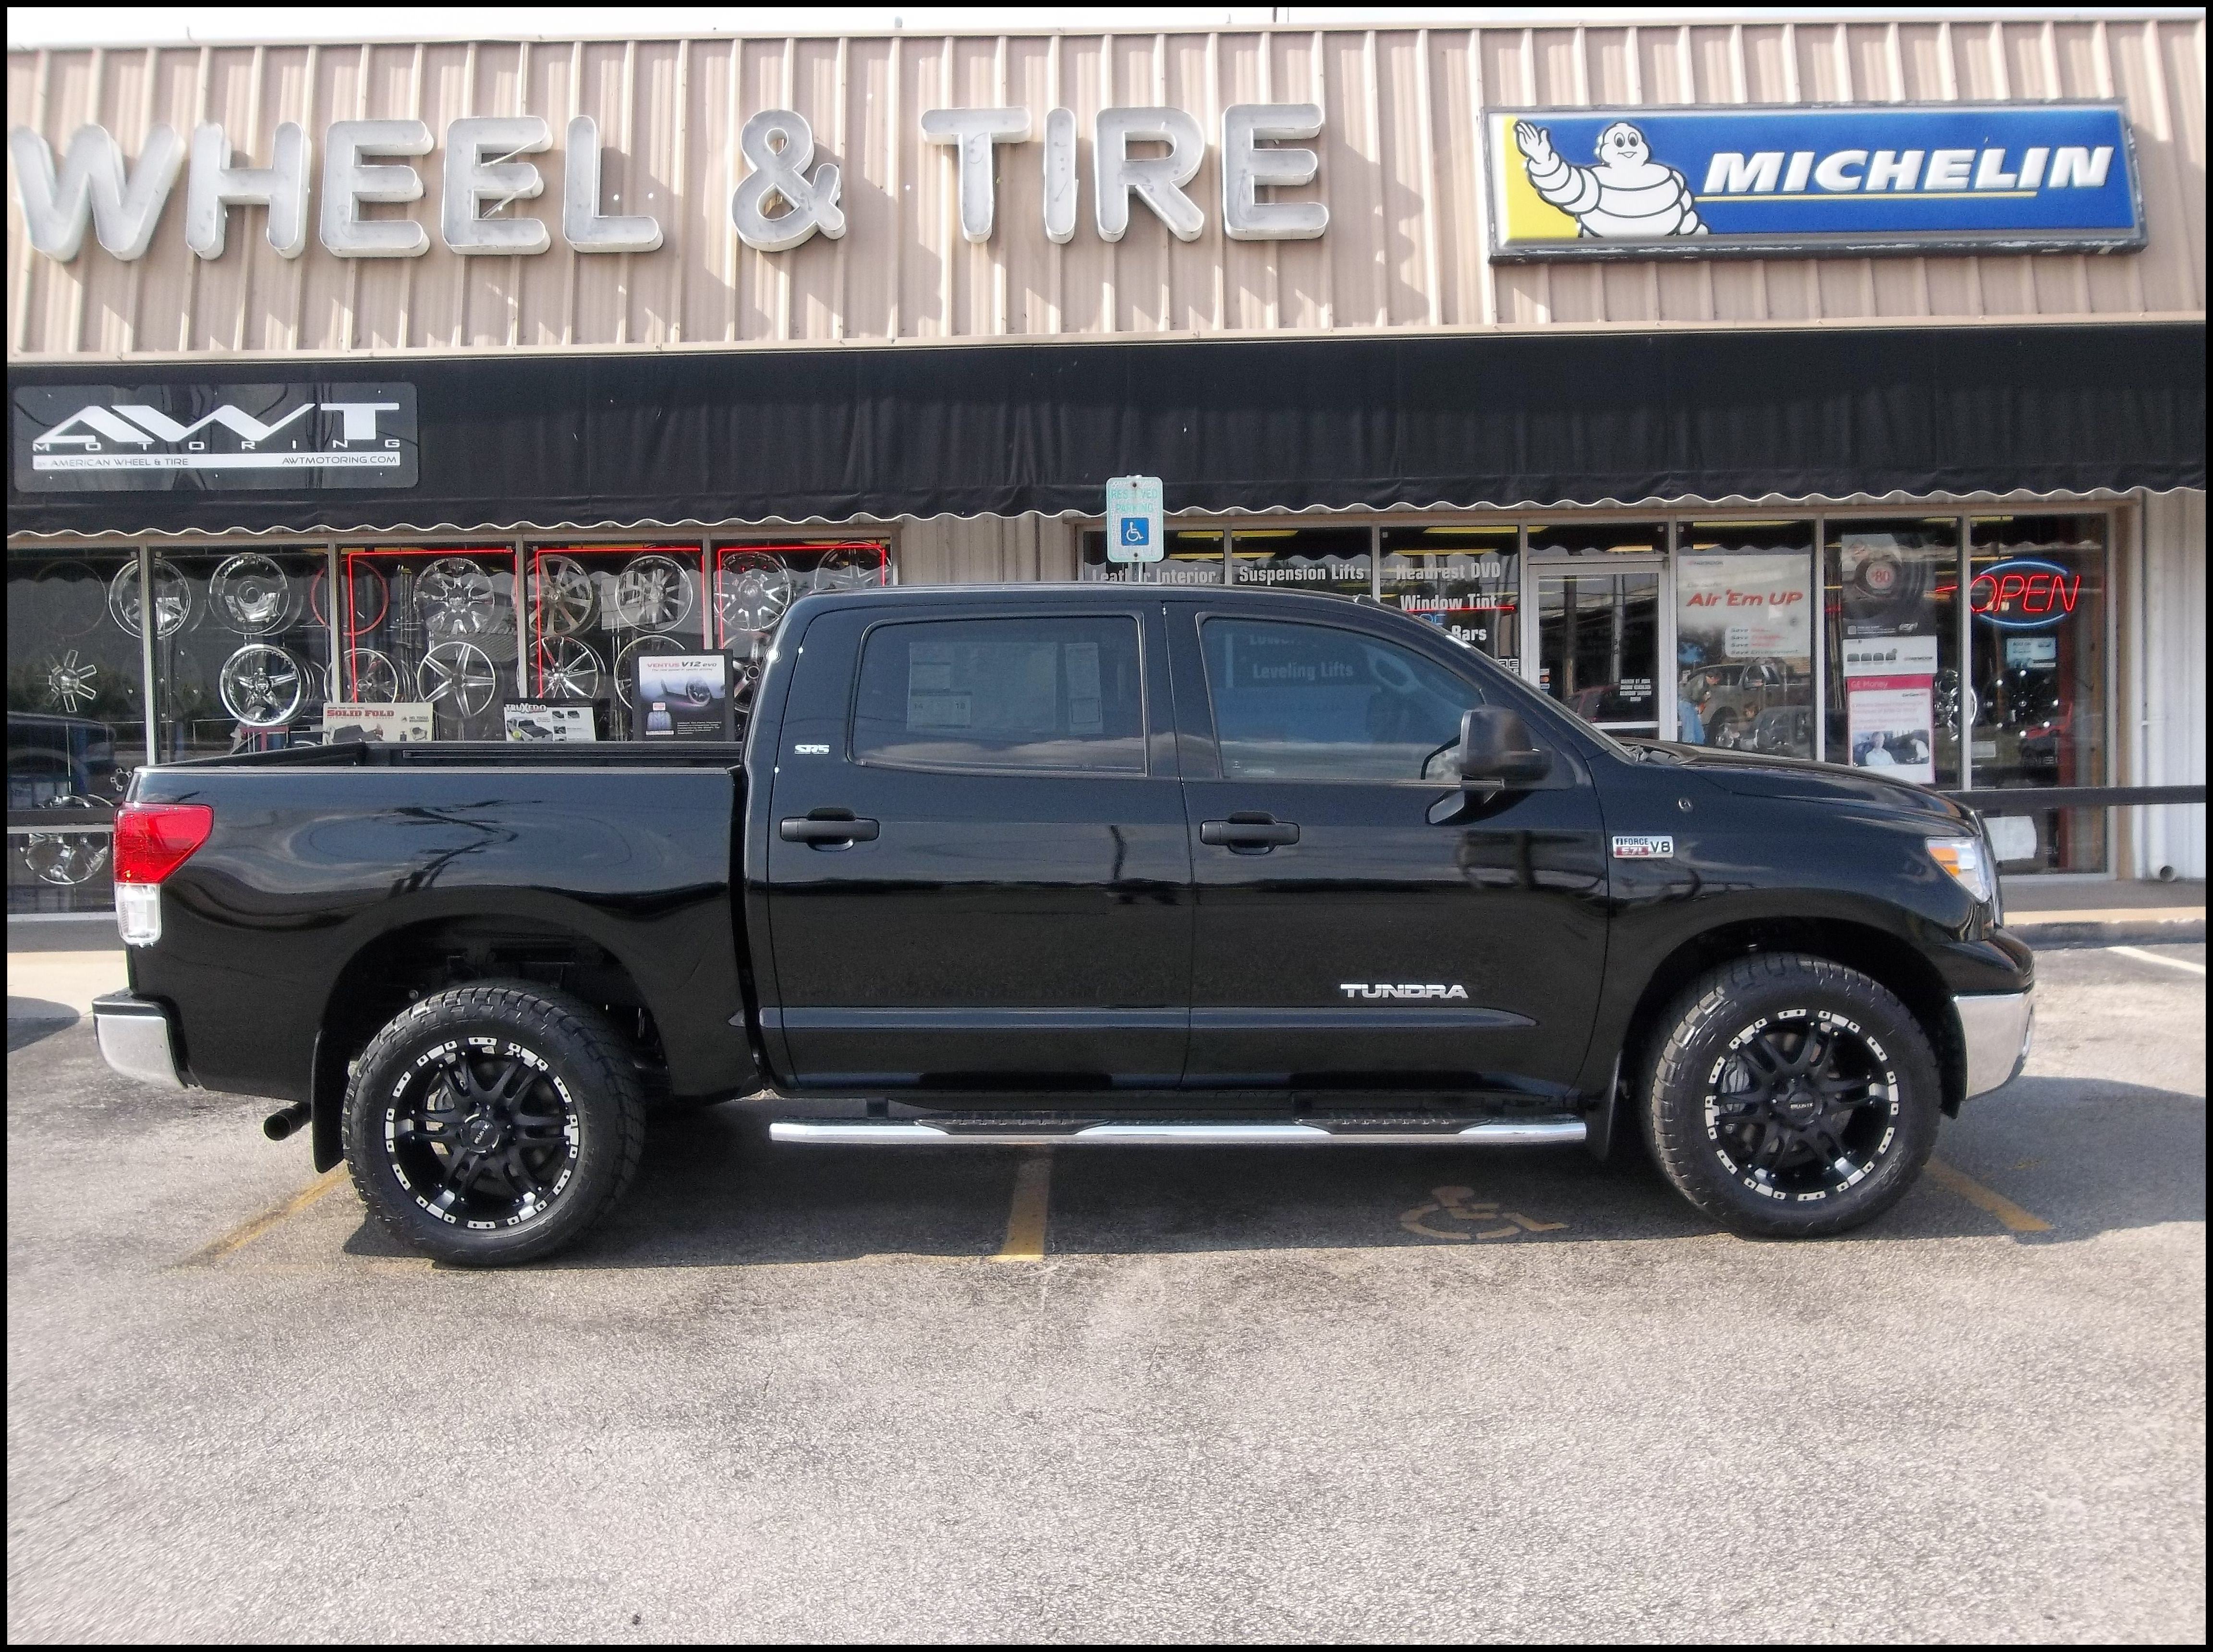 Xxr 527 Inspirational Lifted toyota Tundra with Black Rims Find the Classic Rims Your Image